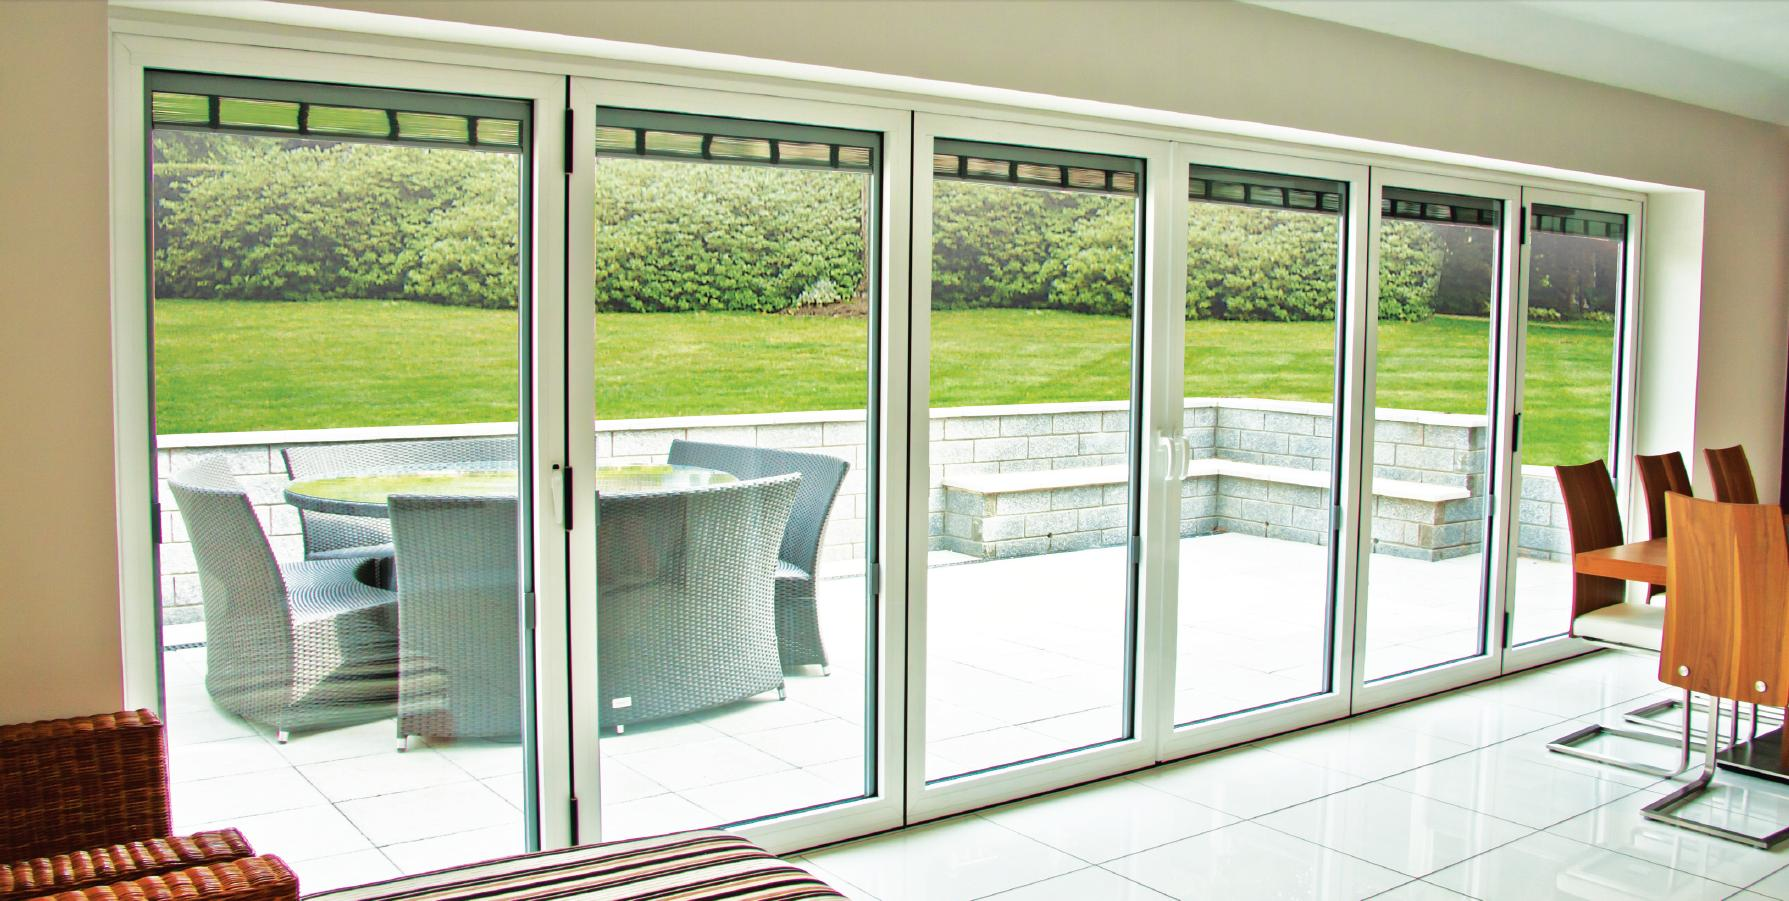 20 Folding Door Design Ideas Interior Amp Exterior Ideas